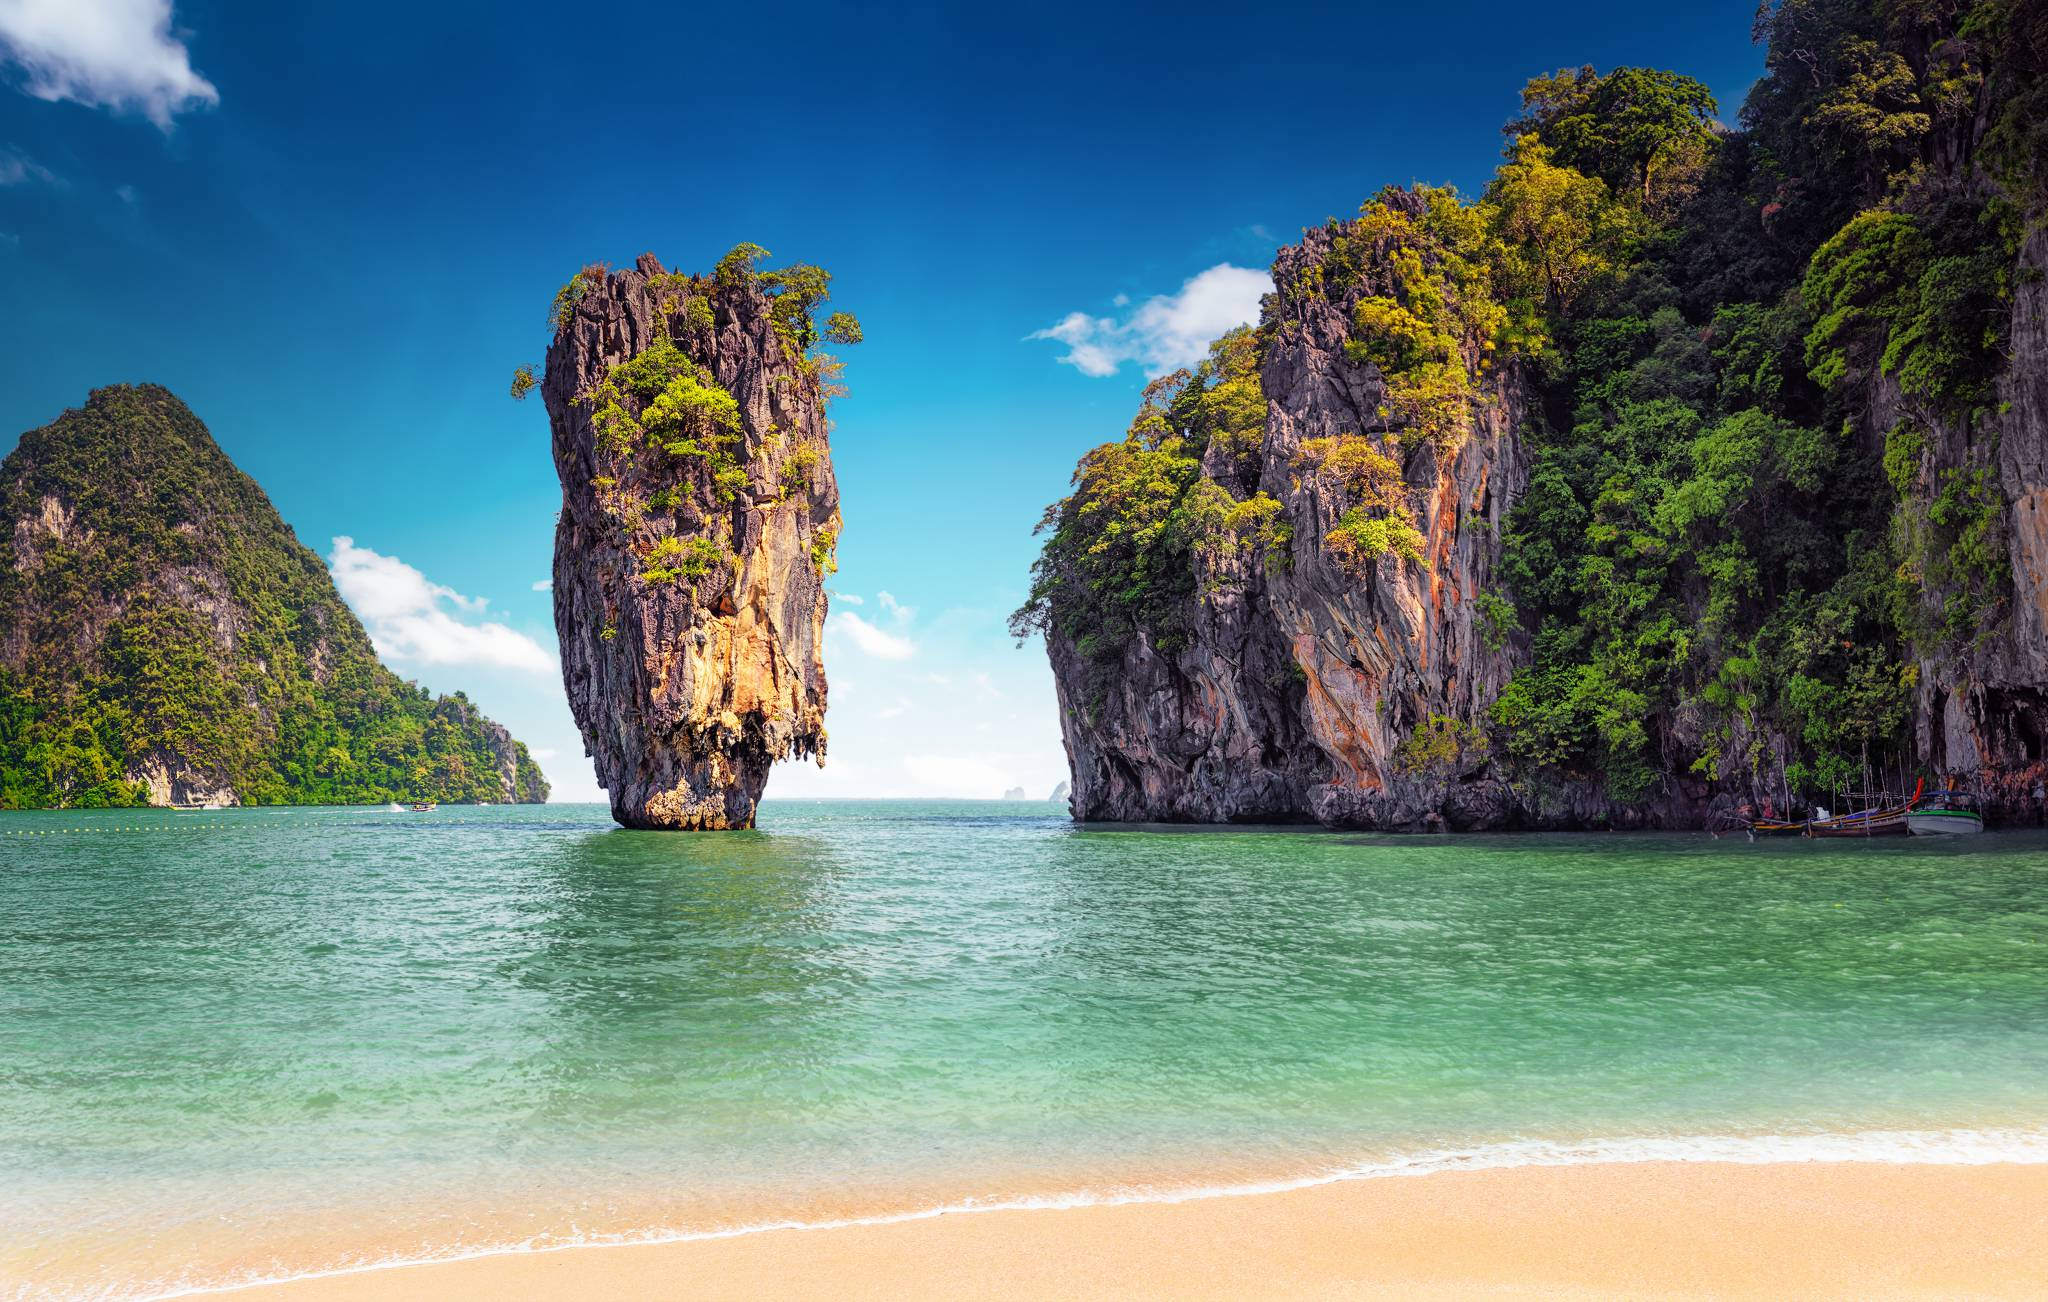 Travel to Phuket, Thailand with eTips travel guide for iPhone, iPad & AppleWatch